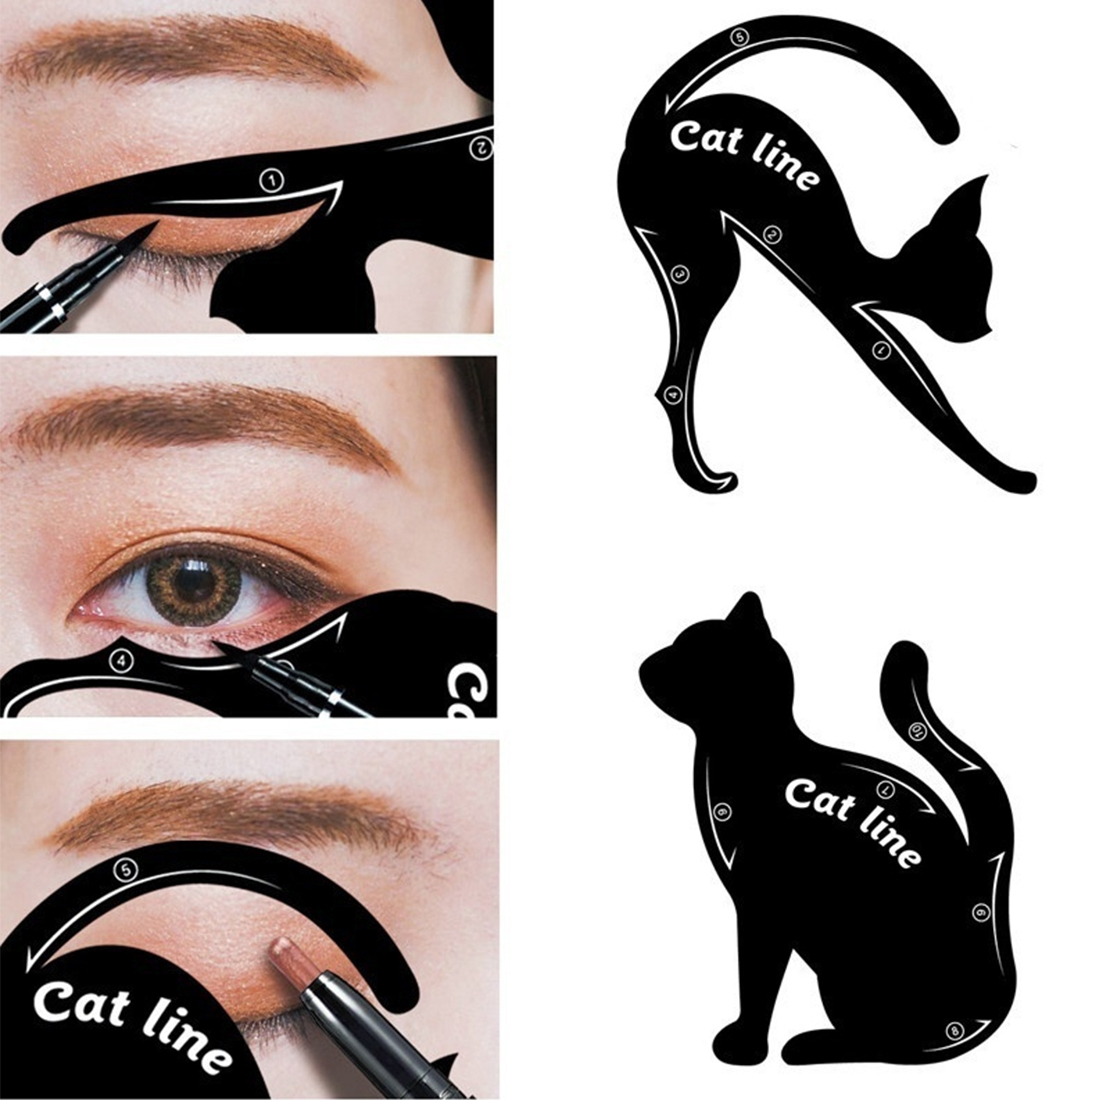 Cat Eyeliner Eyeshadow Stencils Templates Make Up Tools For Eye Makeup Cat Eye Line Guide Cosmetic Mold